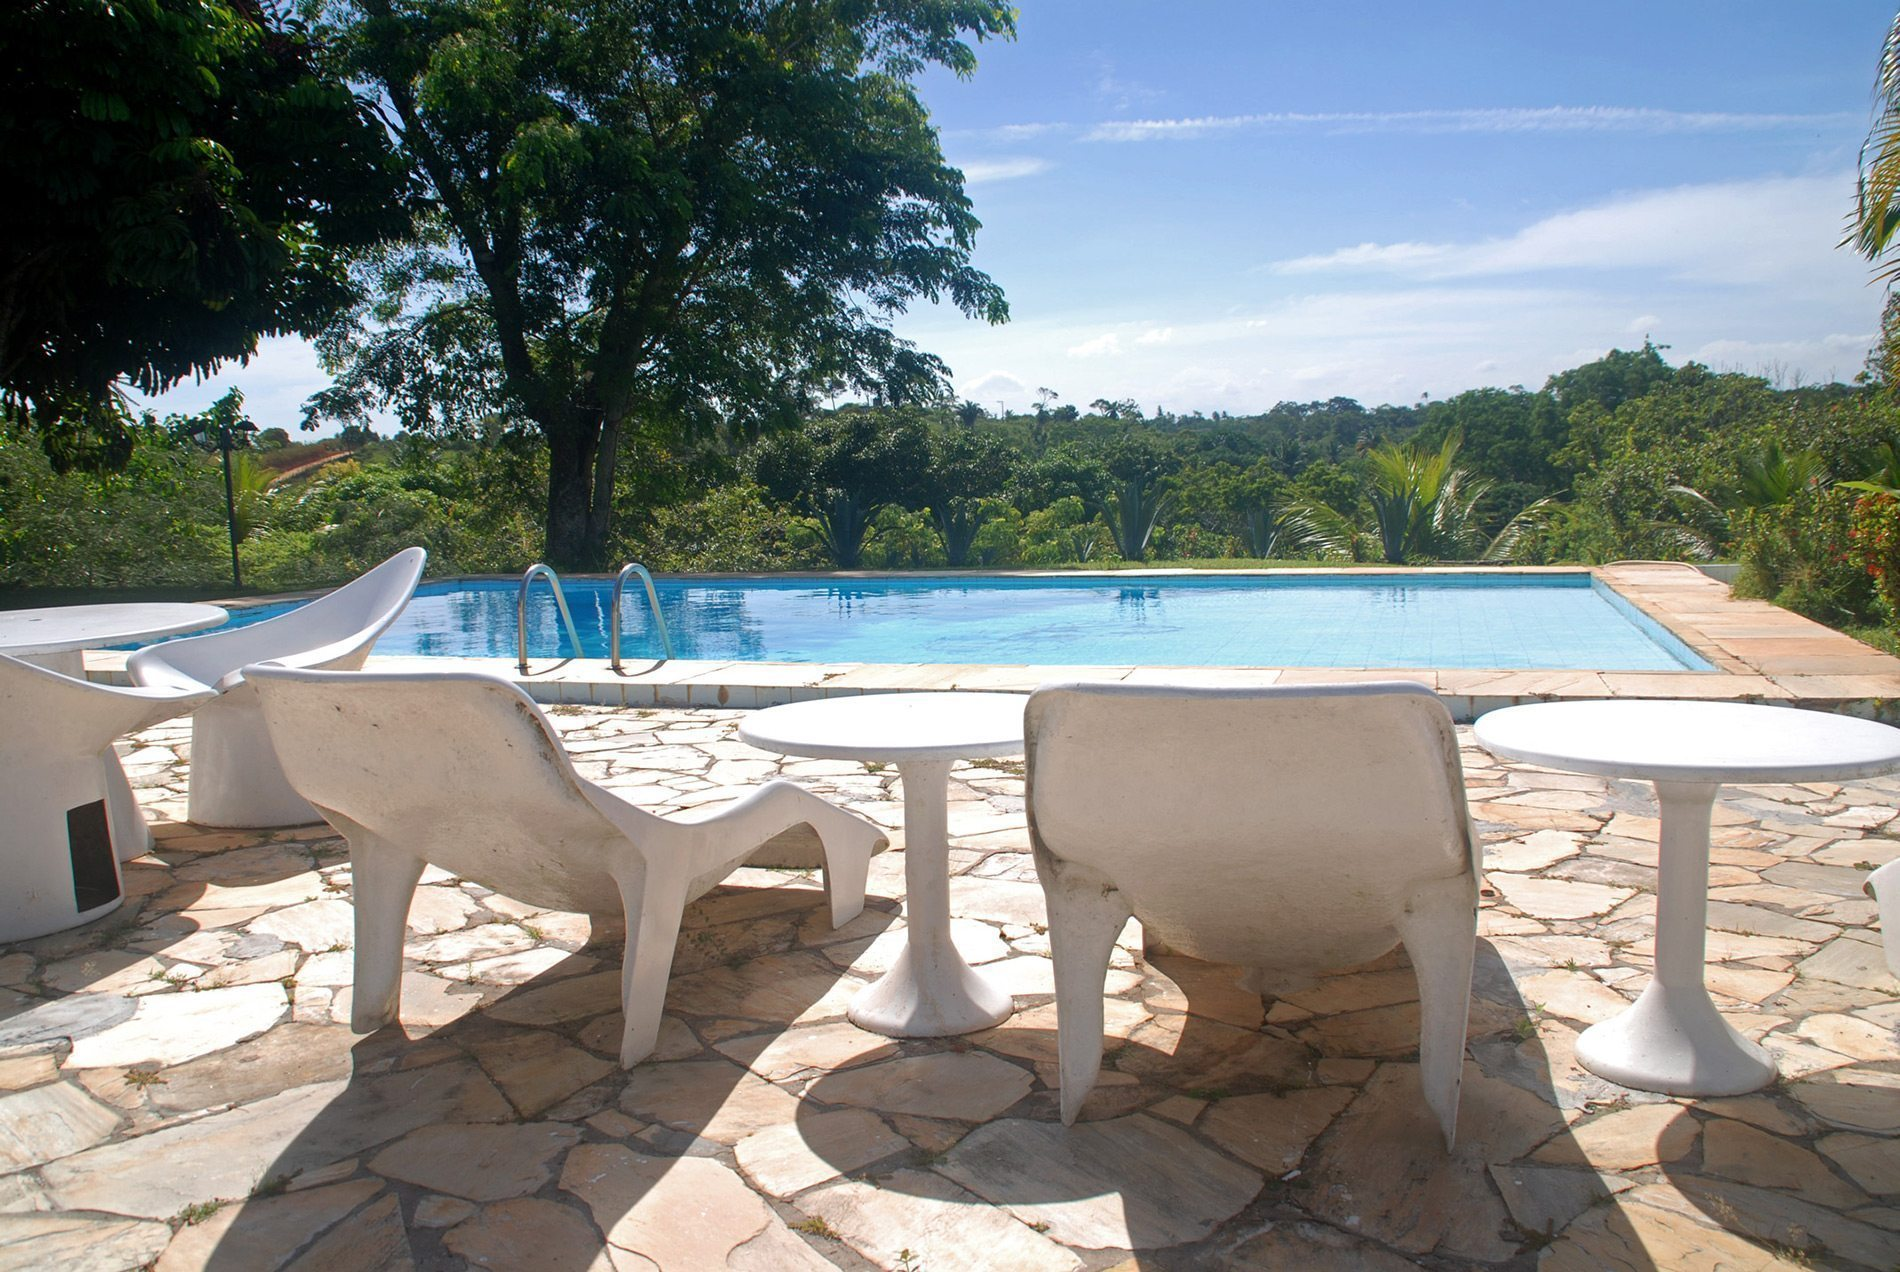 Home for sale with pool overlooking pond in Encontro das Águas